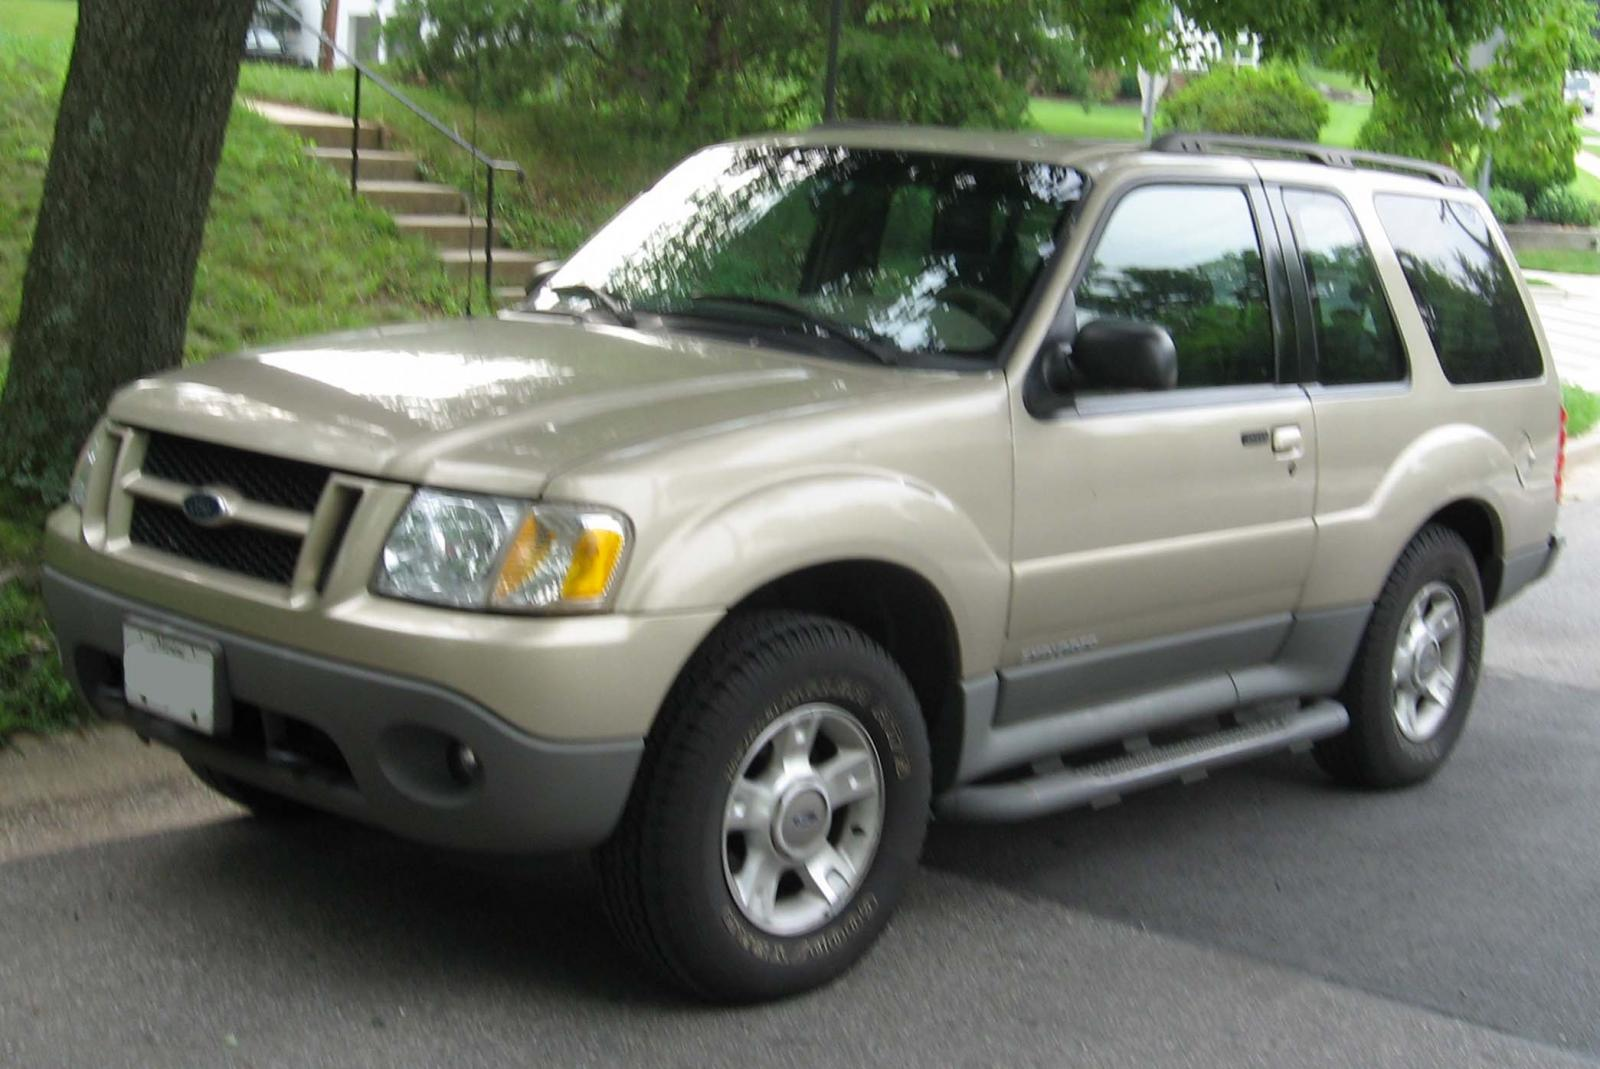 2003 Ford Explorer Information And Photos Zomb Drive